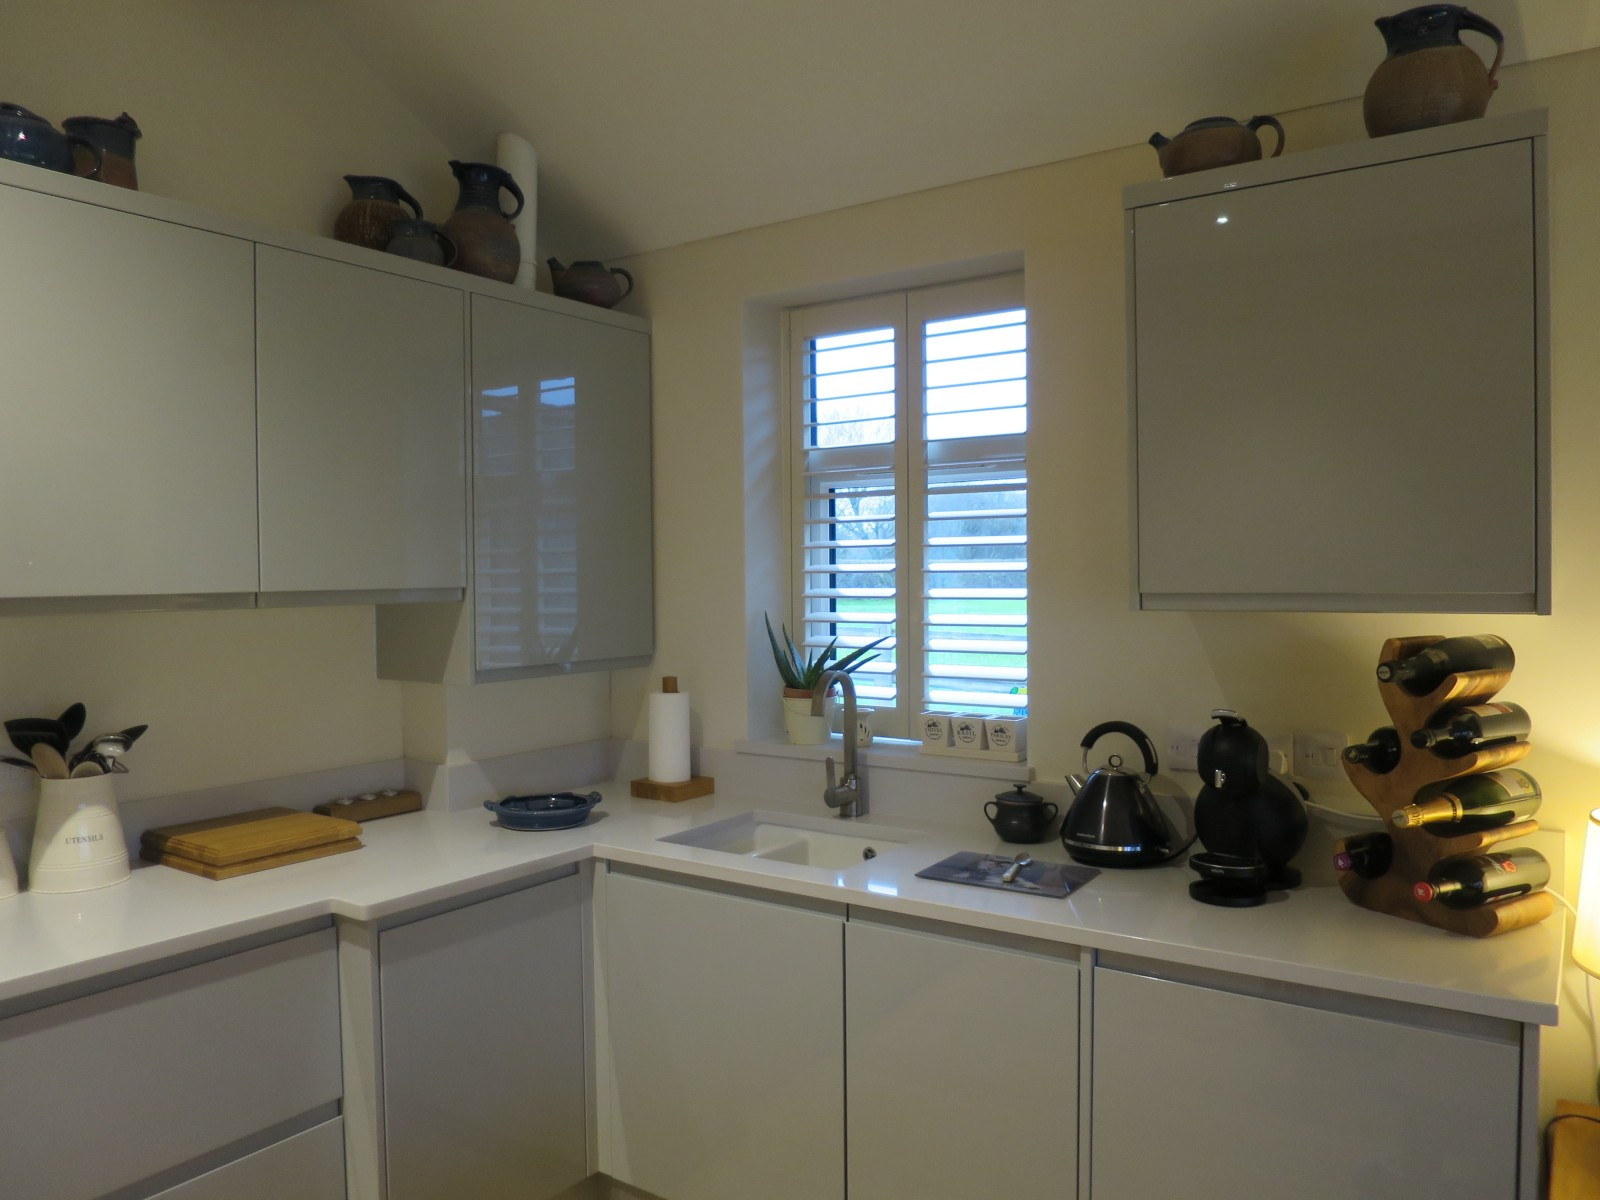 Tracked Plantation Kitchen Shutters Fitted in Bishops Waltham - Shuttersouth